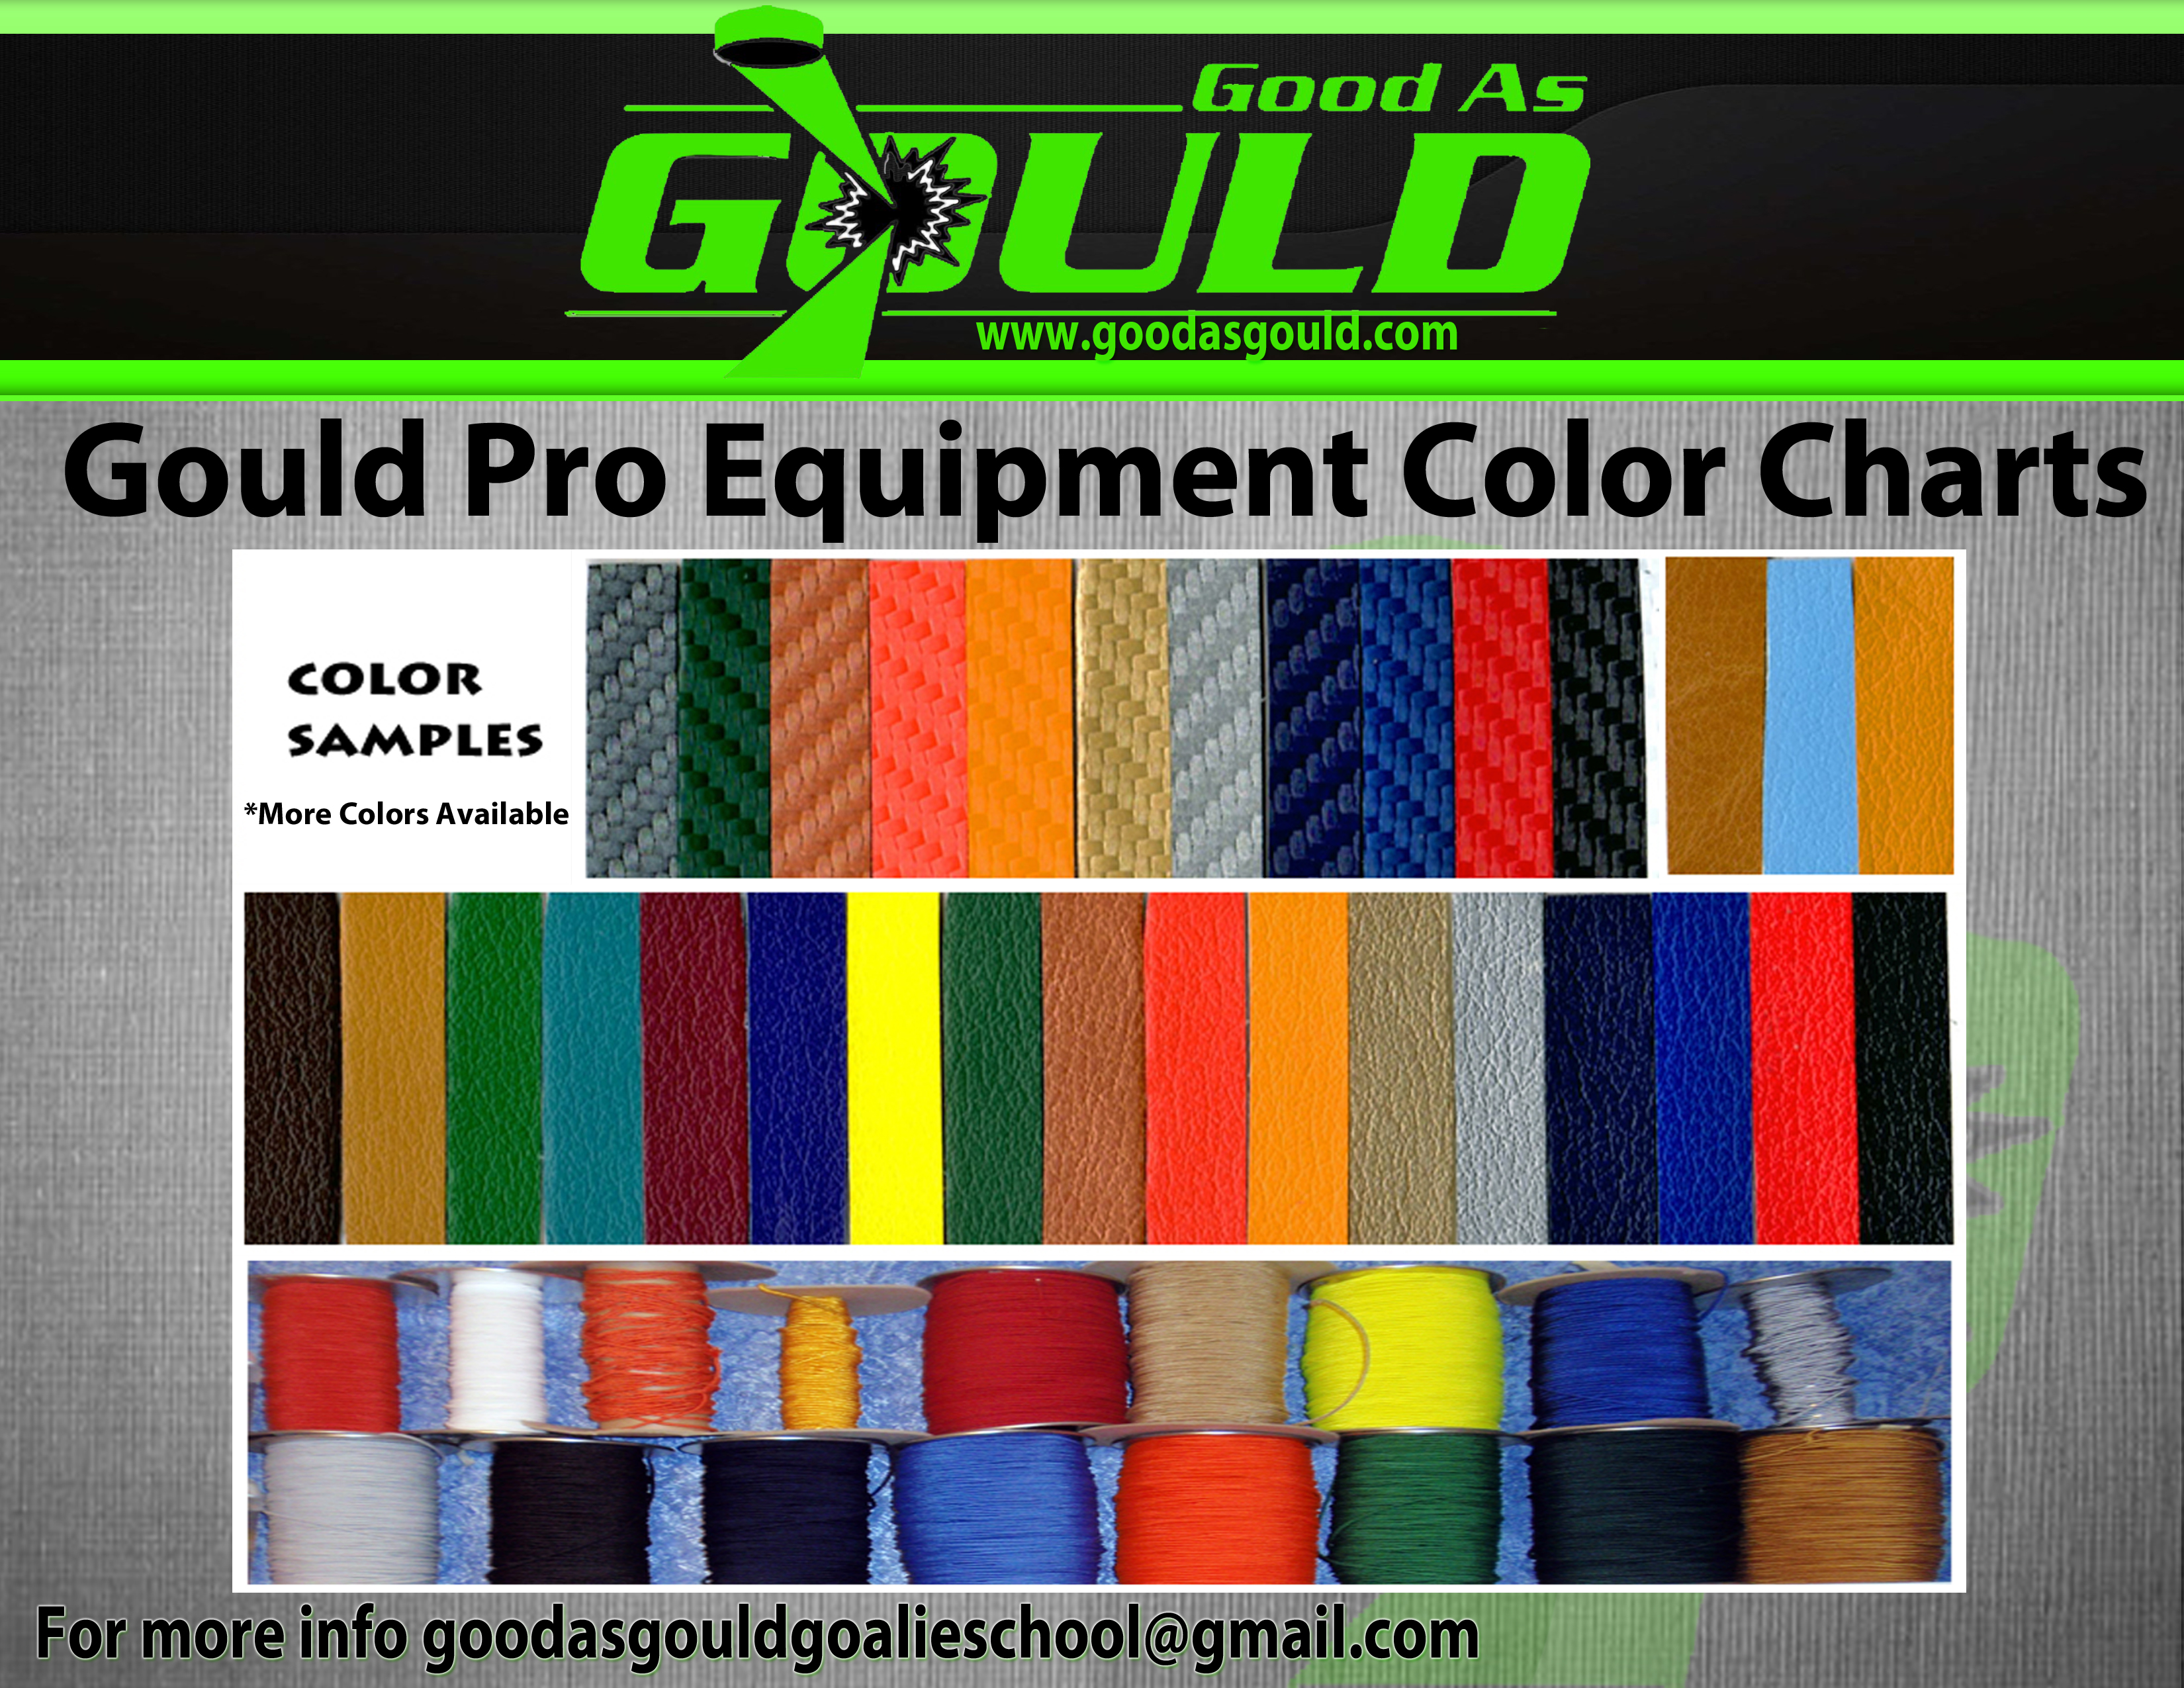 Gould Pro Equipment Color Charts